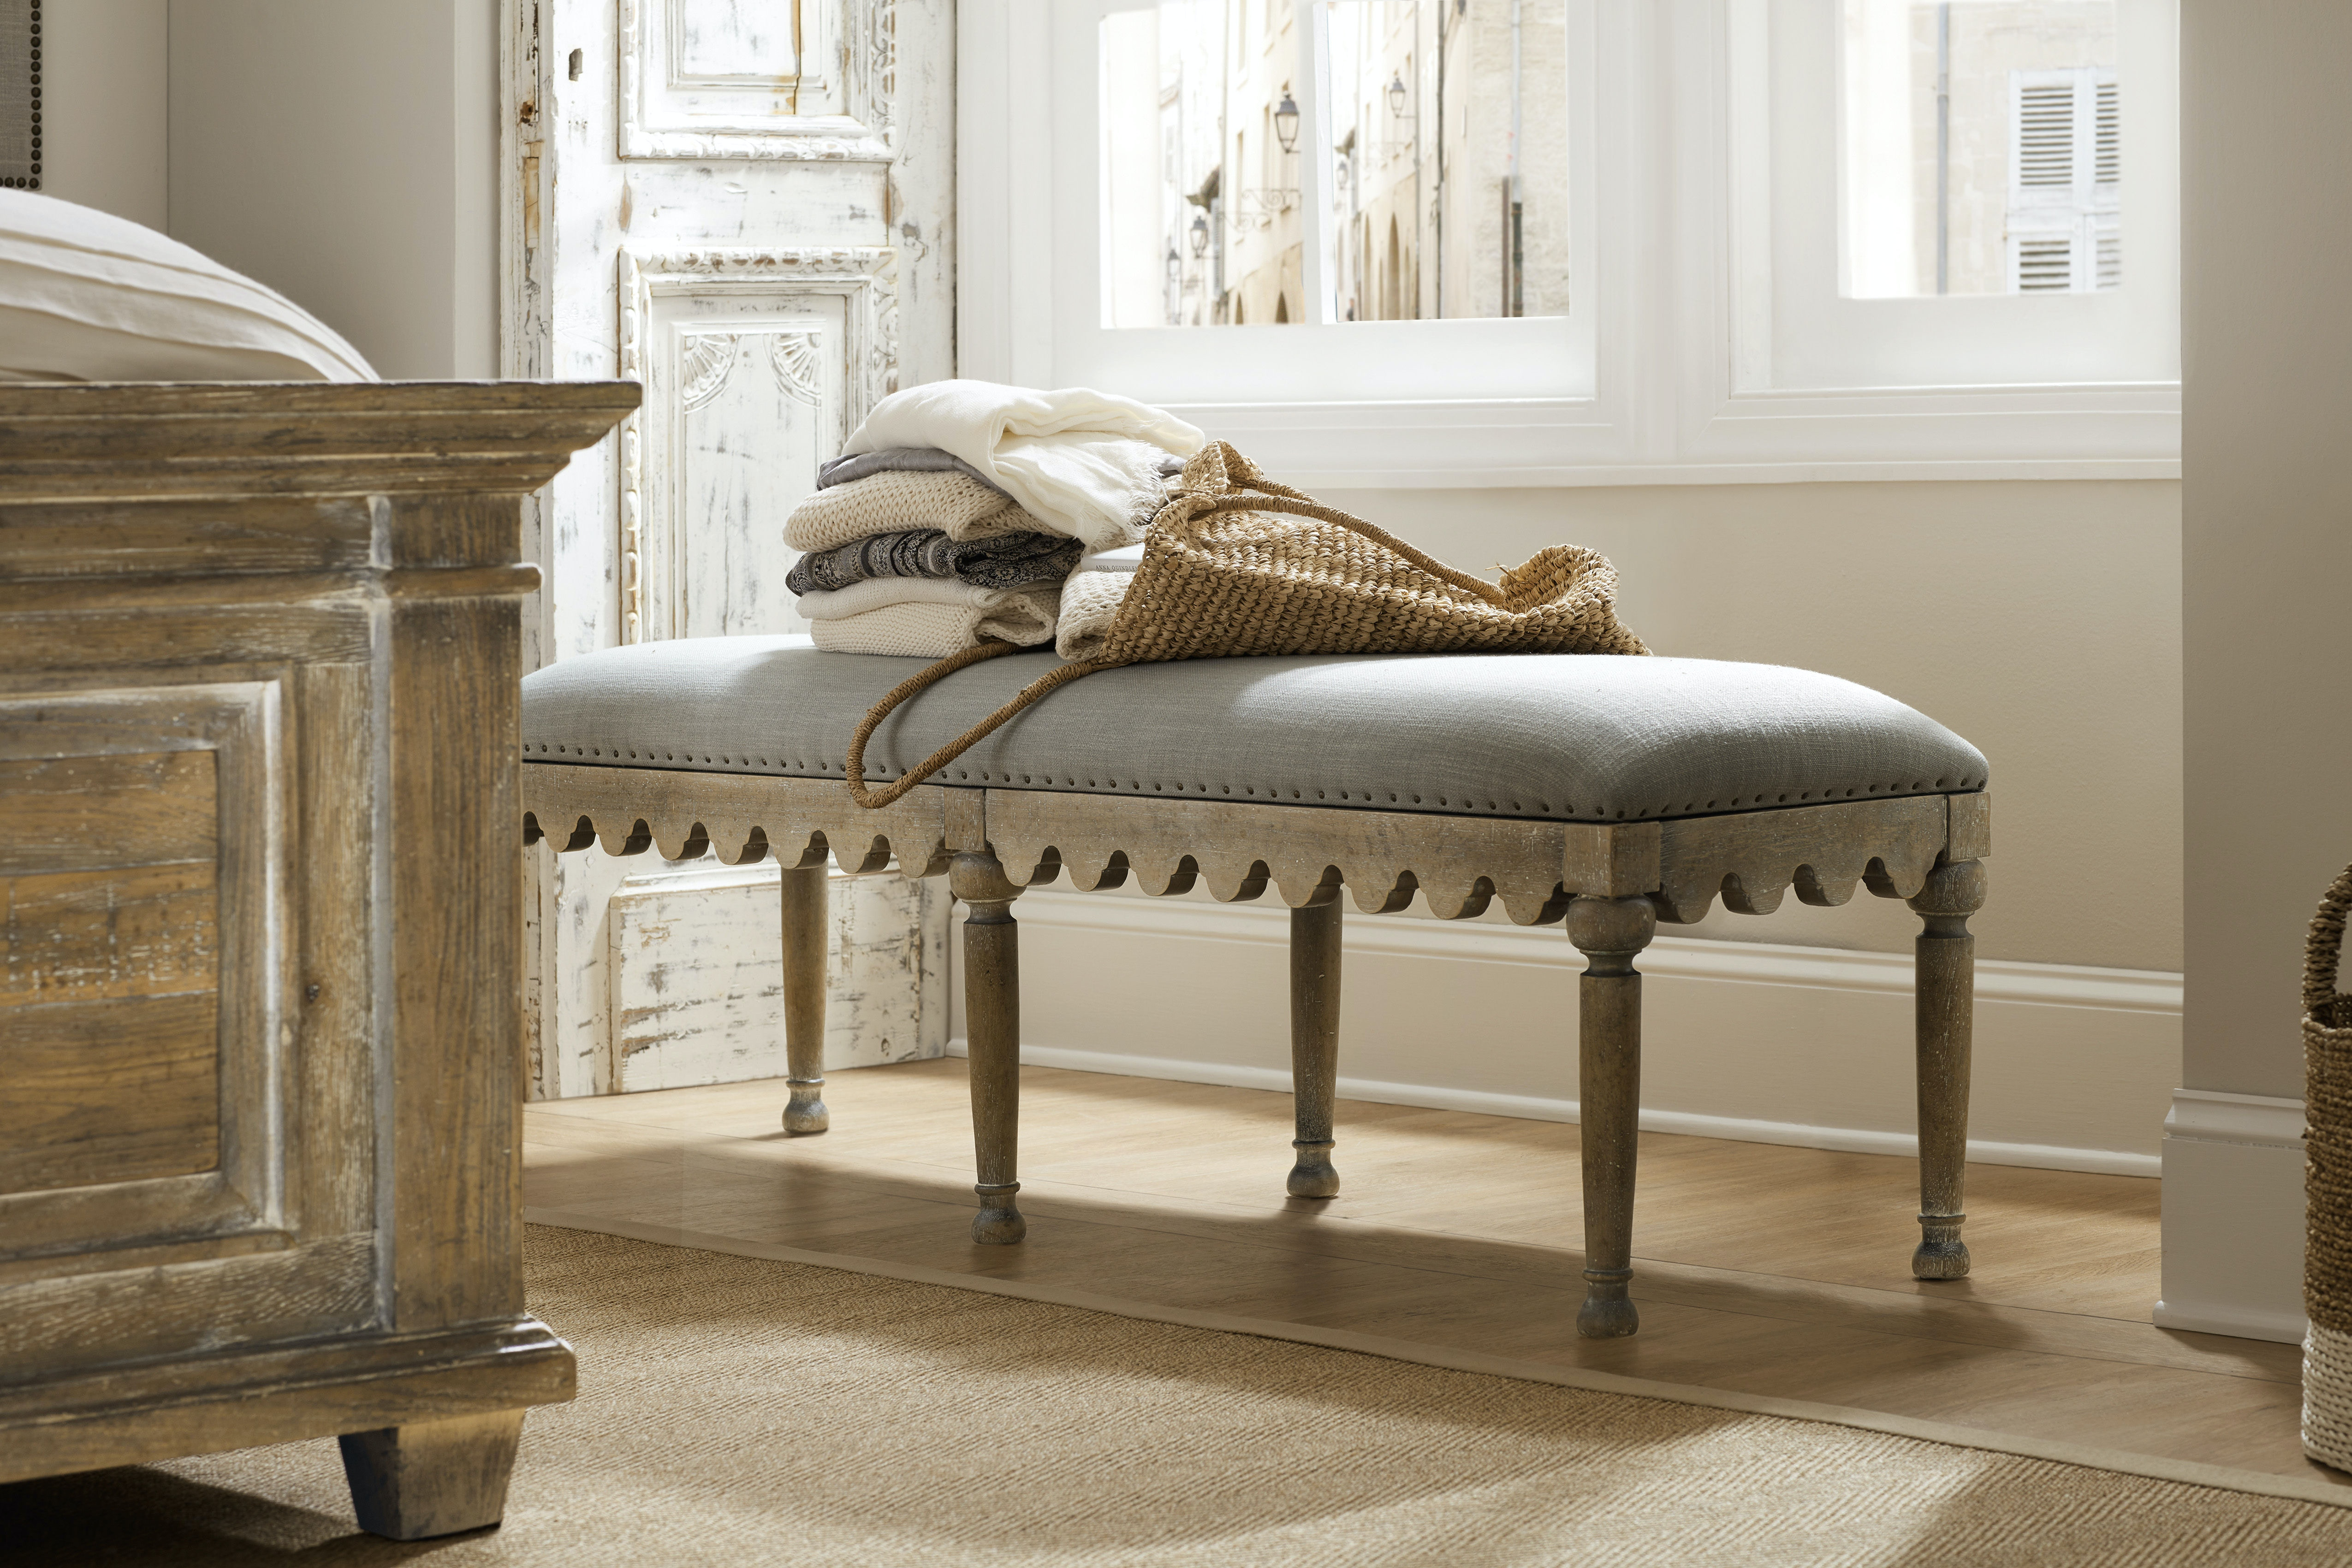 Incroyable Hooker Furniture Boheme Madera Bed Bench 5750 90019 MWD